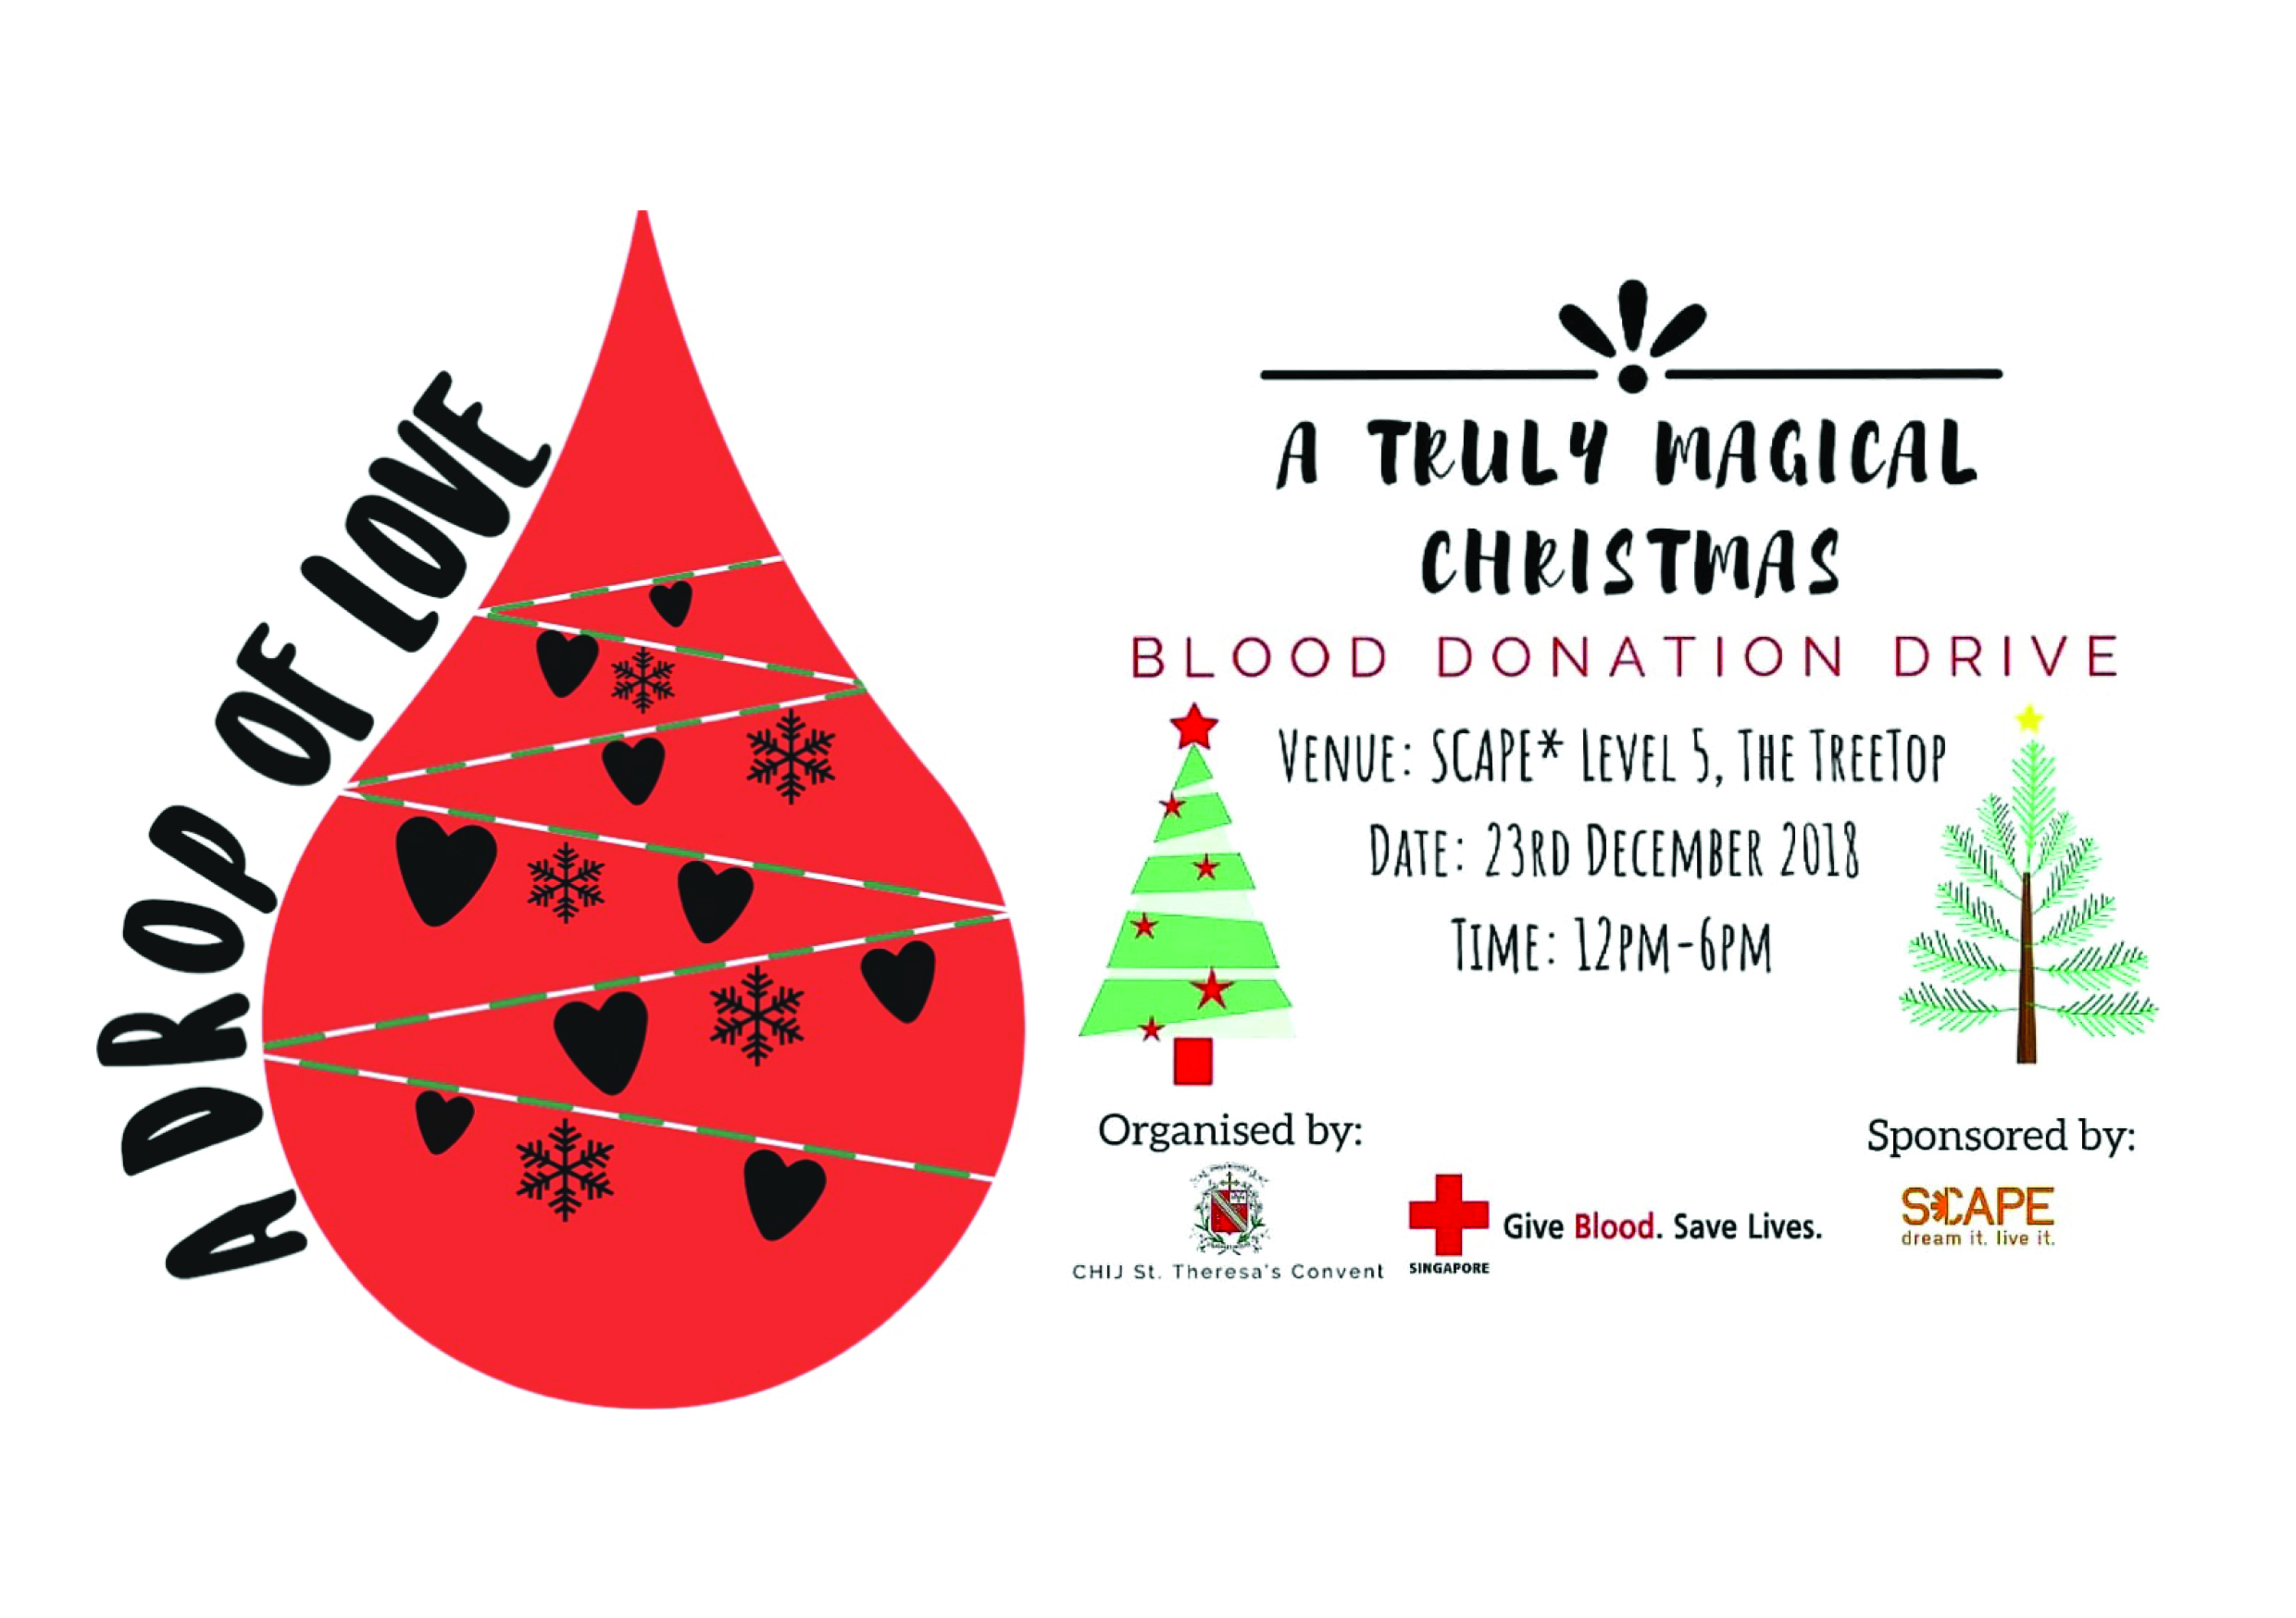 A Drop of Love - A truly Magical Christmas